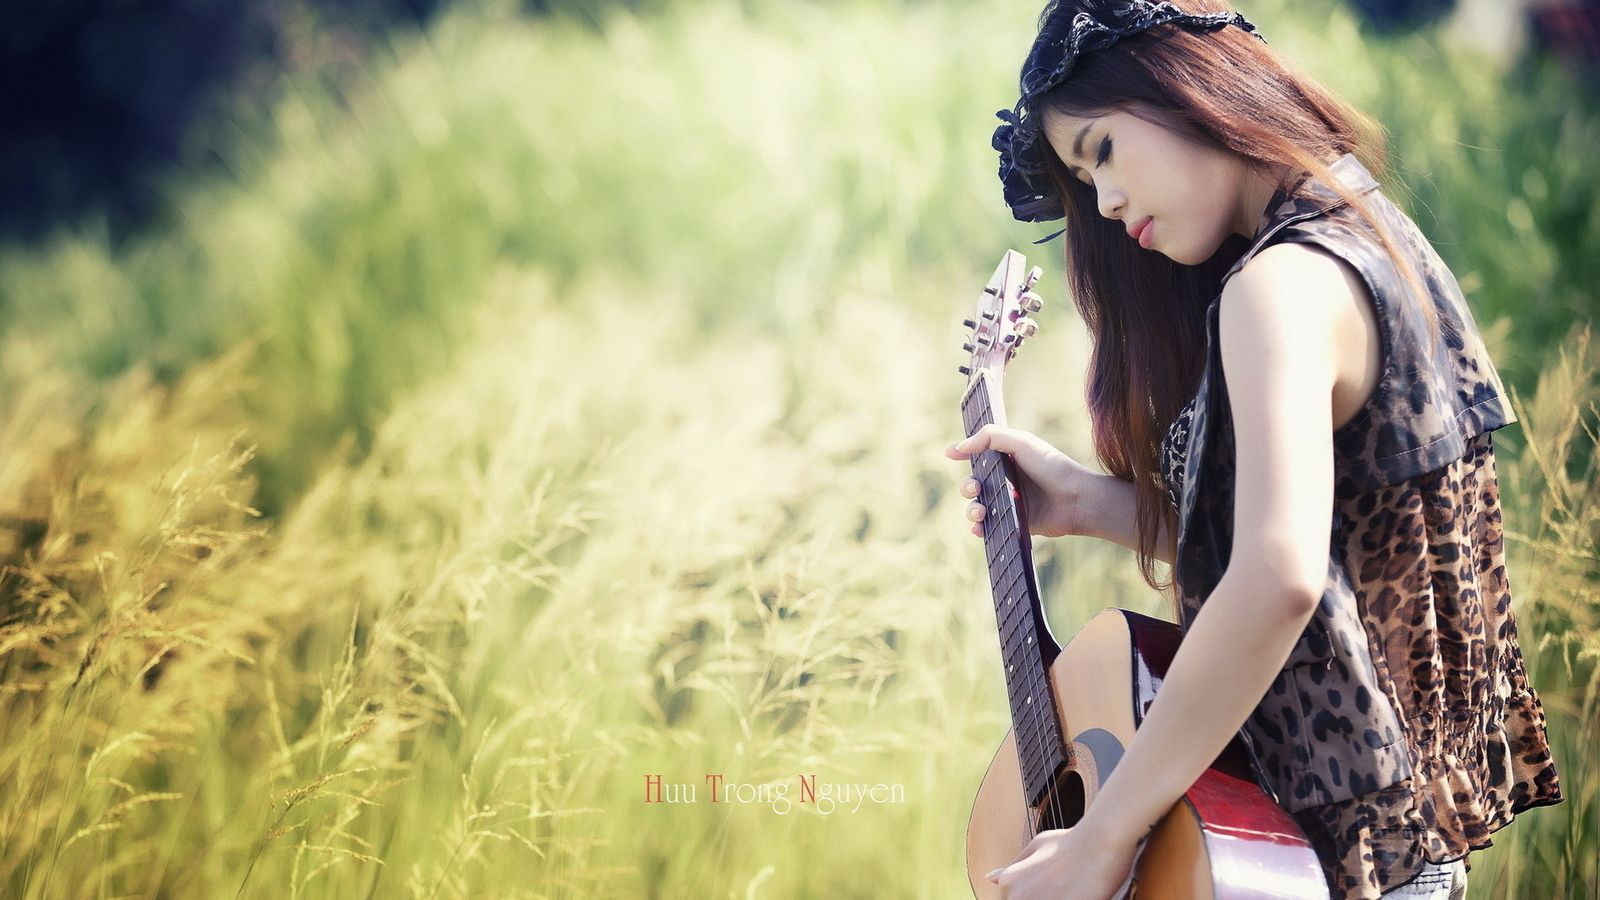 Beautiful Pictures With Guitar Girl